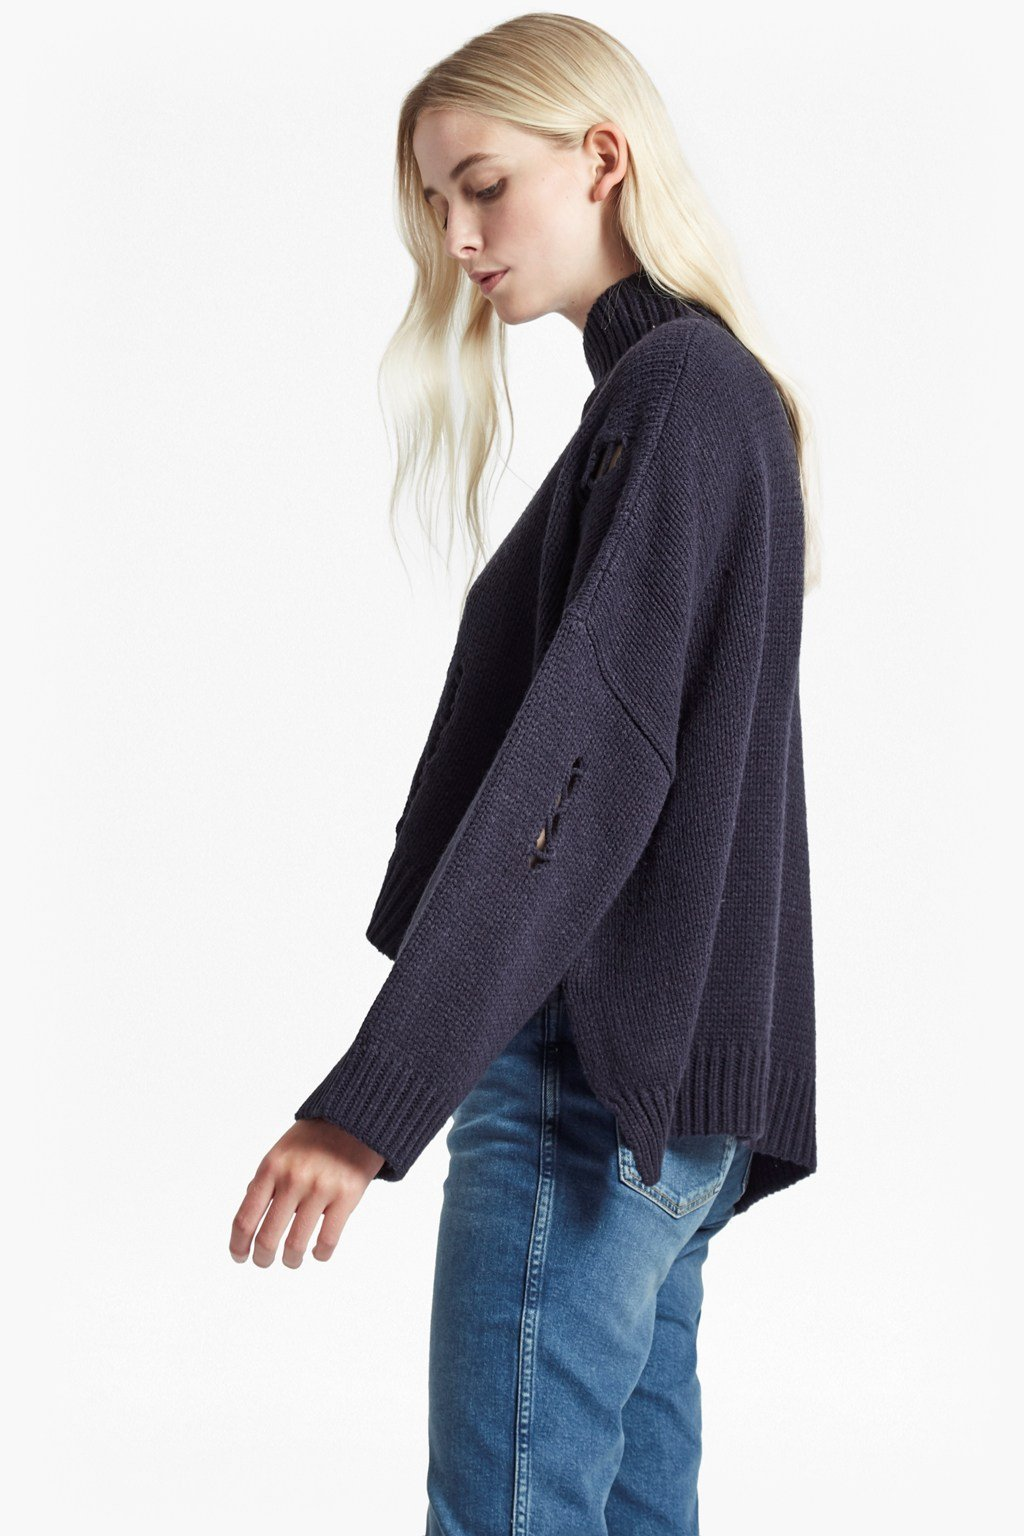 Nixo Knit Distressed High Neck Jumper